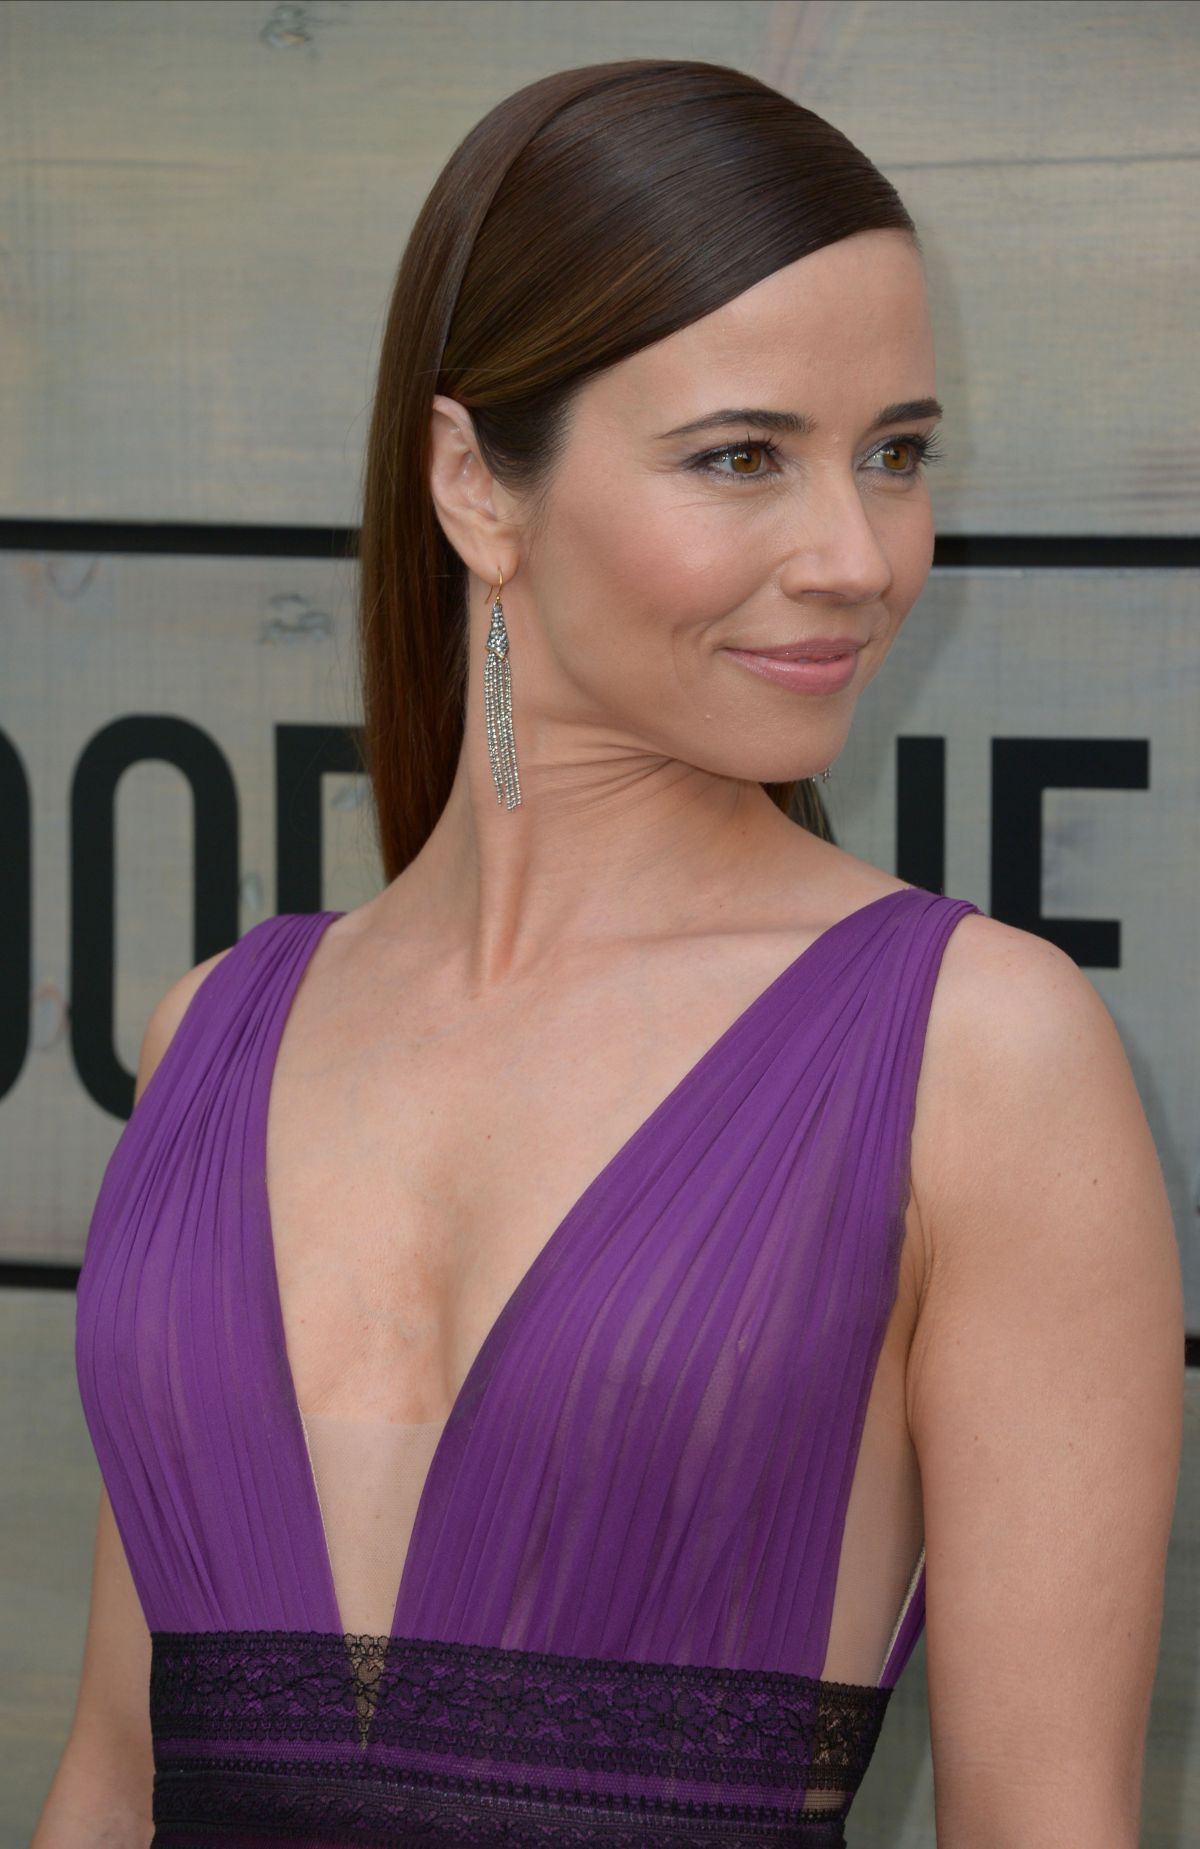 LINDA CARDELLINI at Bloodline TV Series Premiere in Los Angeles 05/24/2016